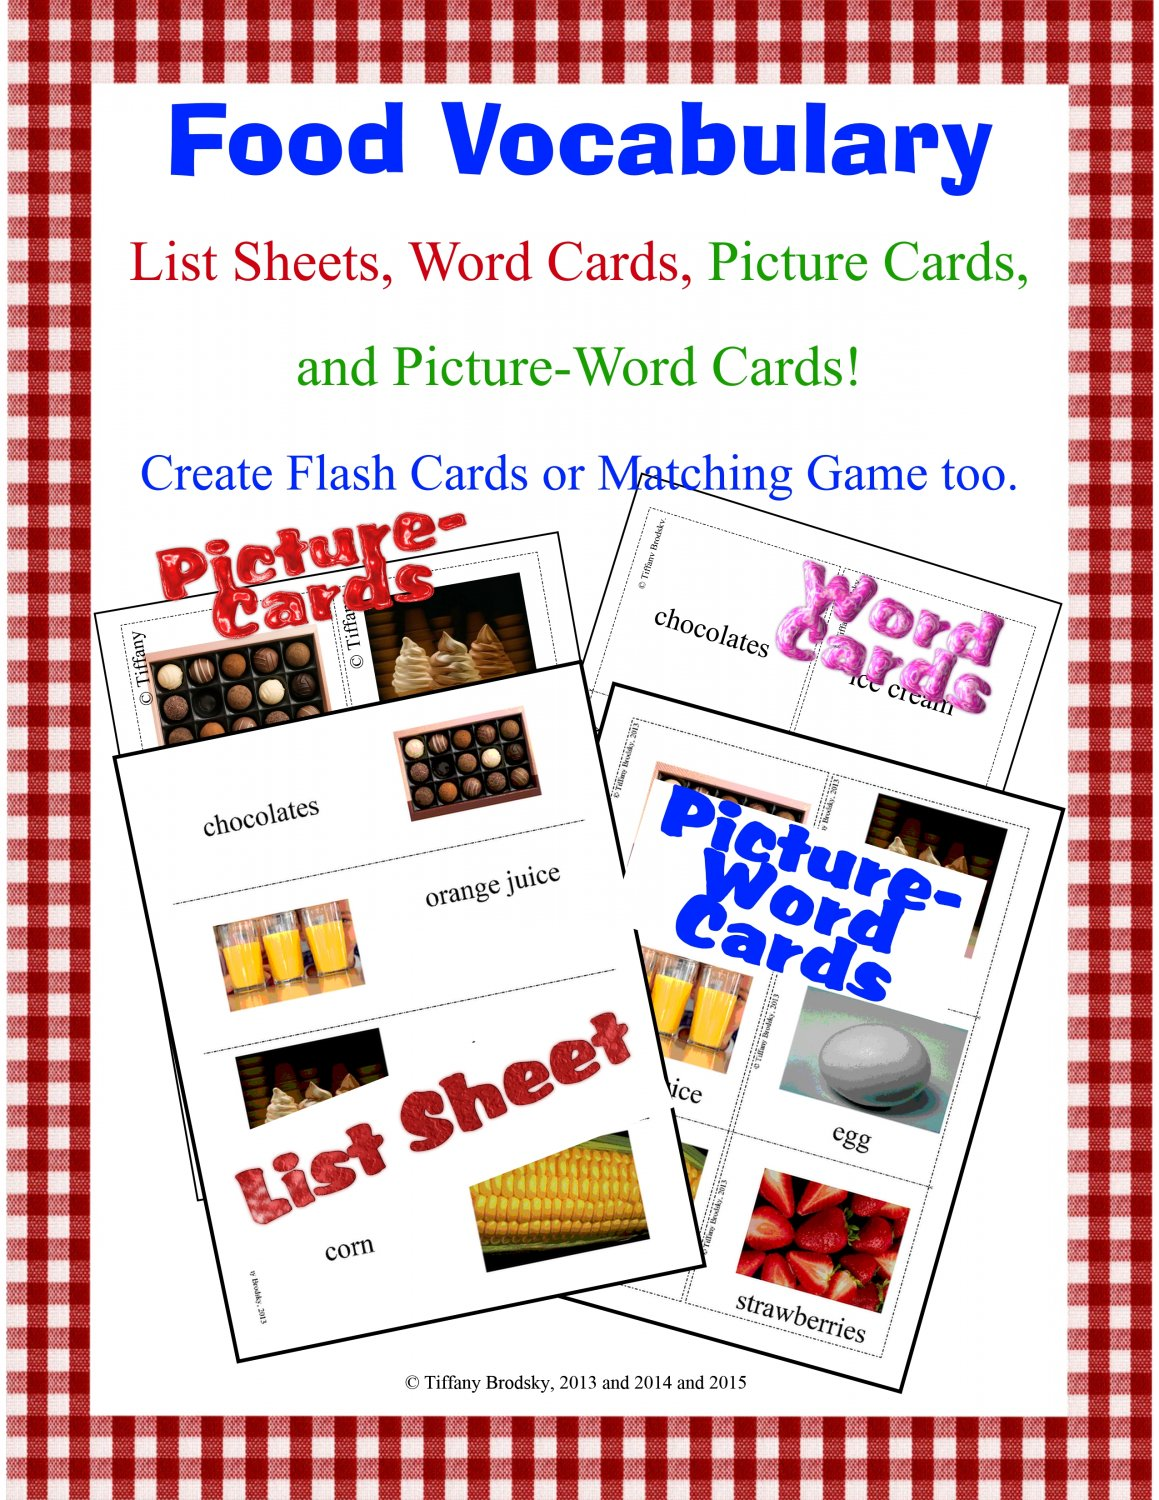 Food Vocabulary Word Cards; Great for ESL or ESOL students! PDF